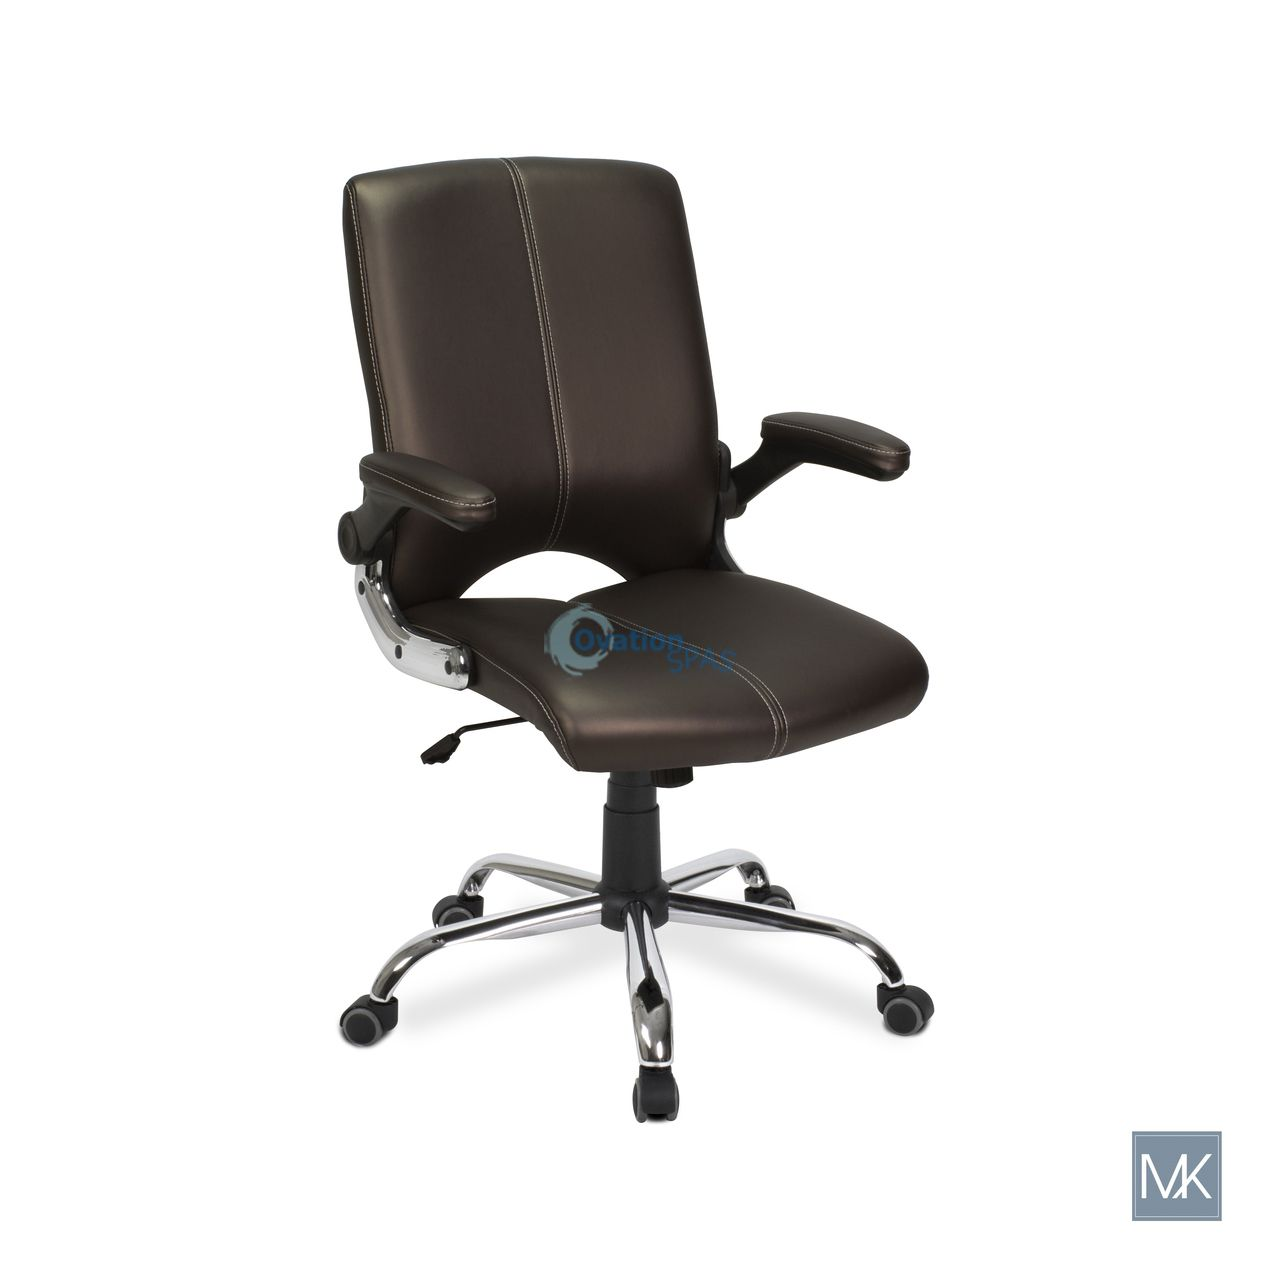 Versa Customer Chair (Coffee)